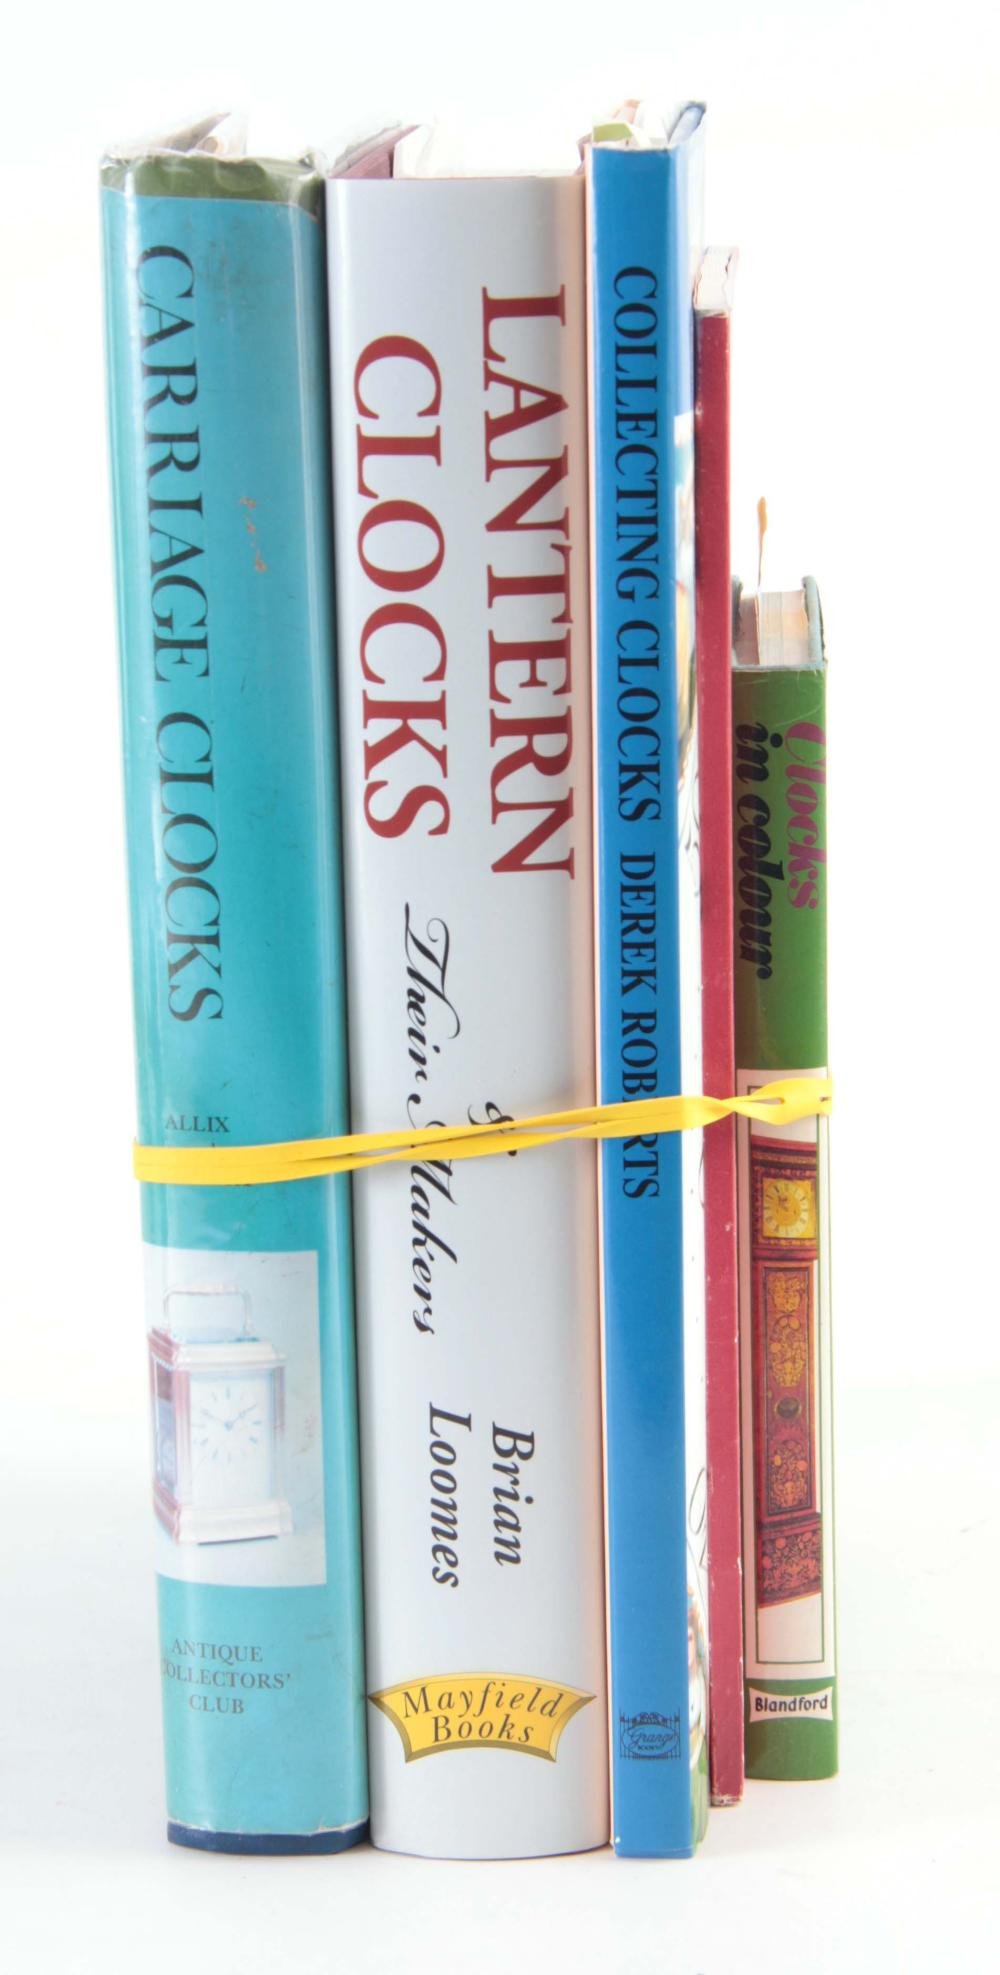 A SELECTION OF FIVE CLOCK BOOKS Lantern Clocks by